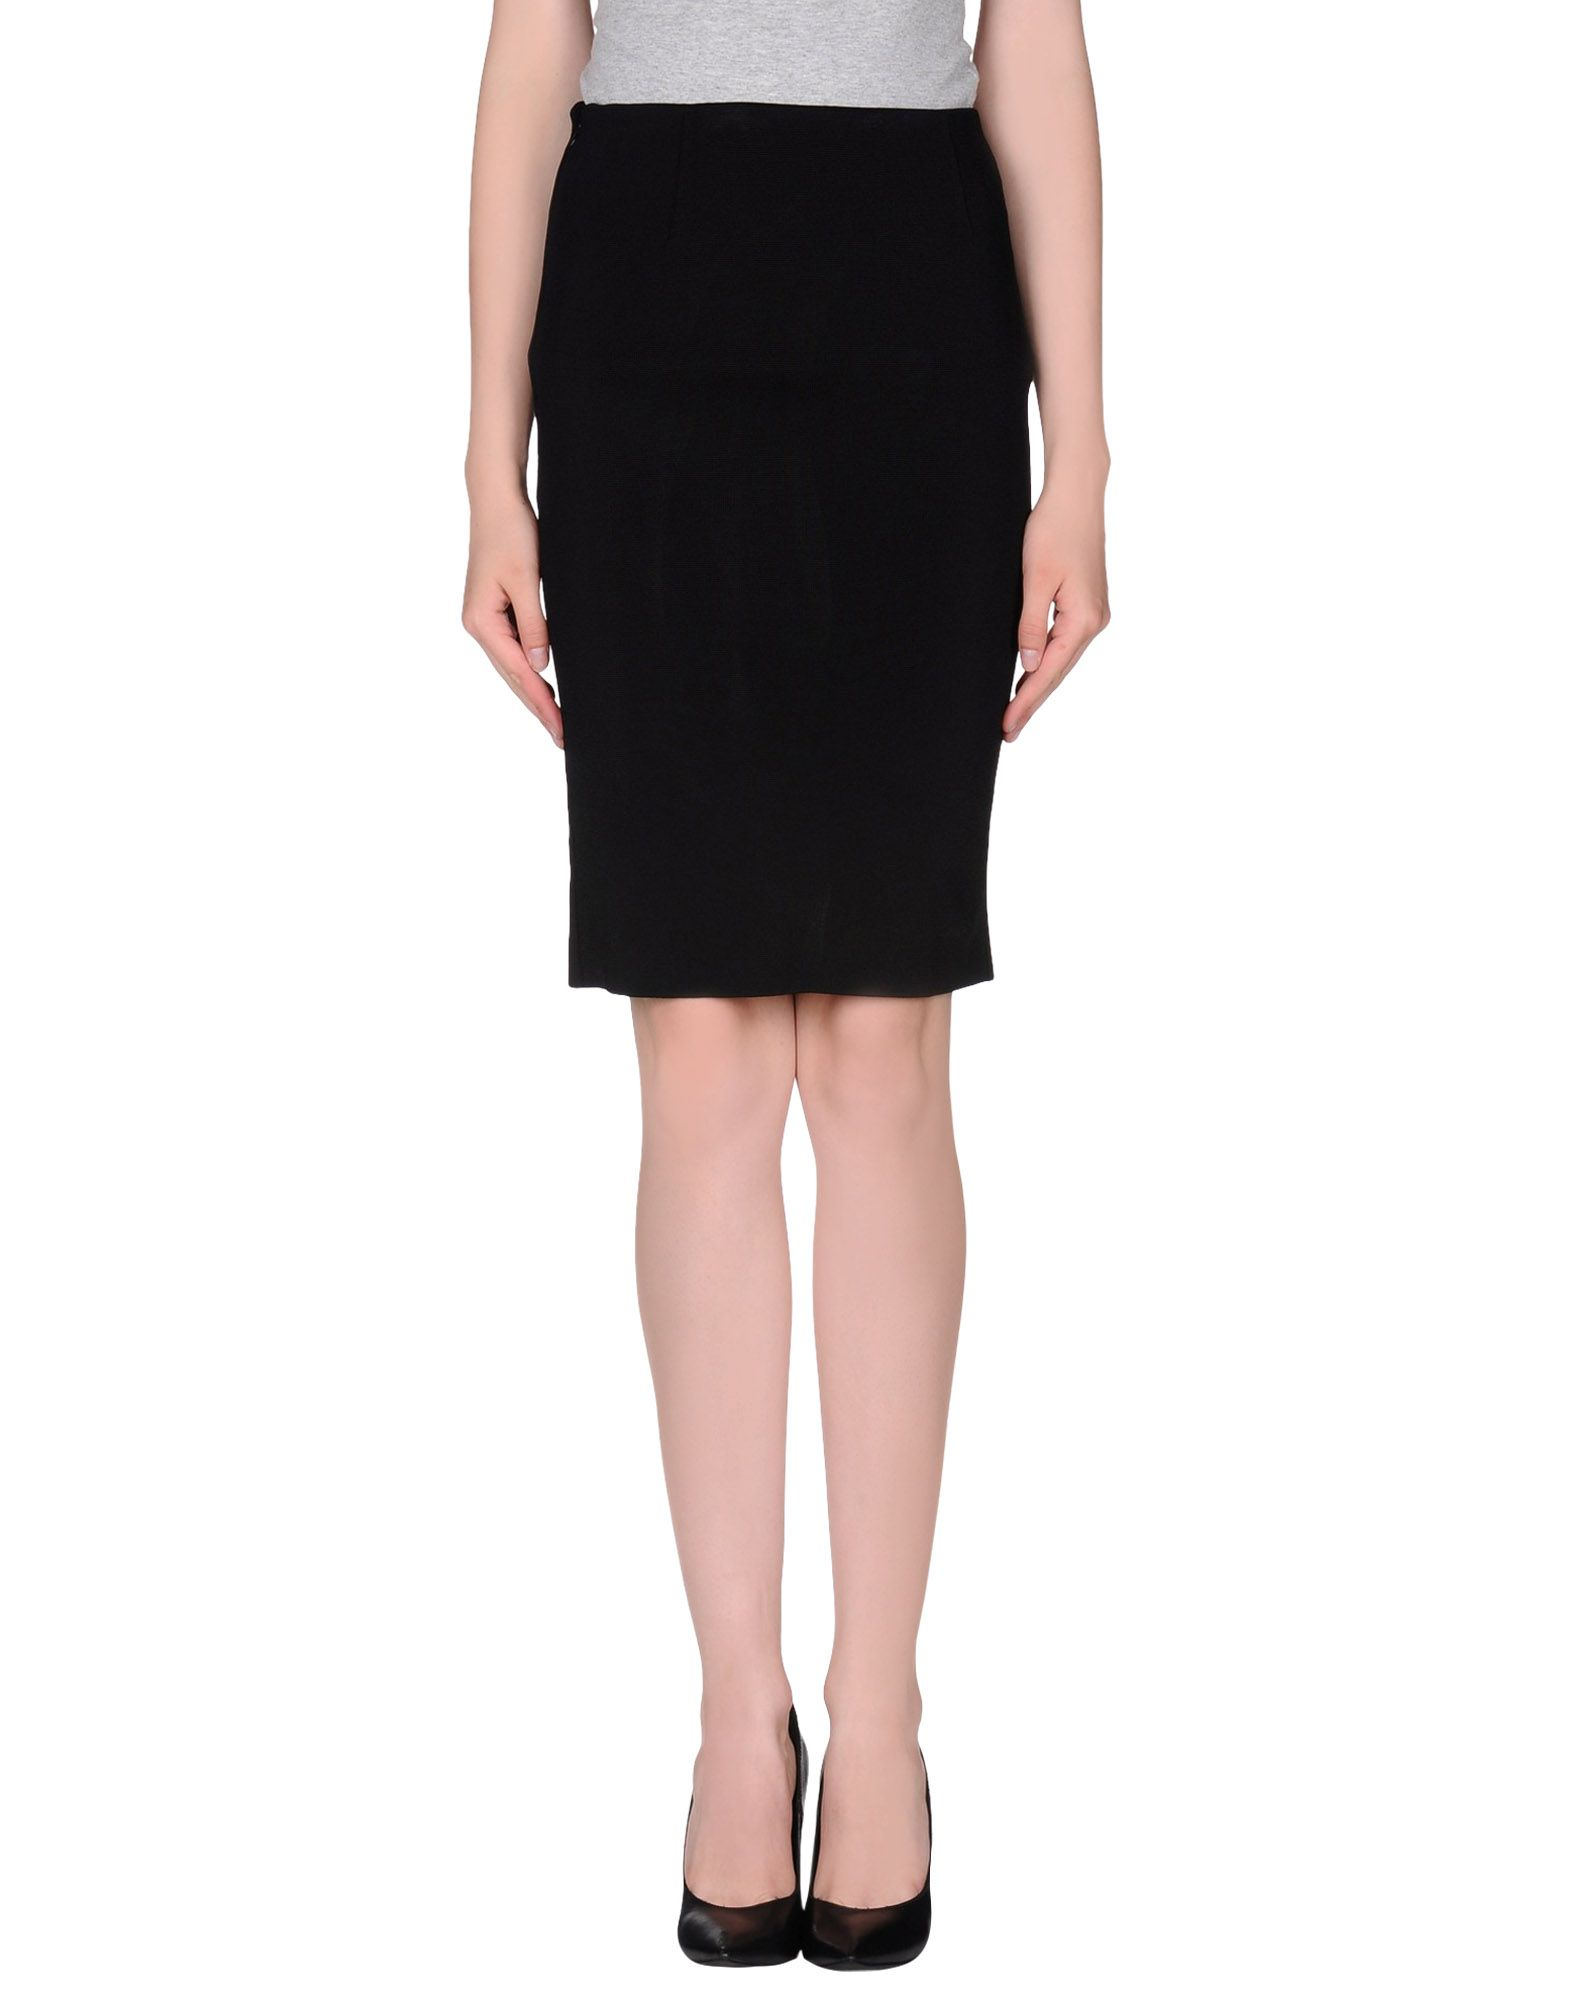 Amazing What Is The Perfect Skirt Length For Women Over 40? One Skirt Length That Will Always Be Flattering For Women Over 40 Is Knee Length I Now Like My Skirts Best When They Either Finish At The Top Of The Knee Or Just Below However, Just